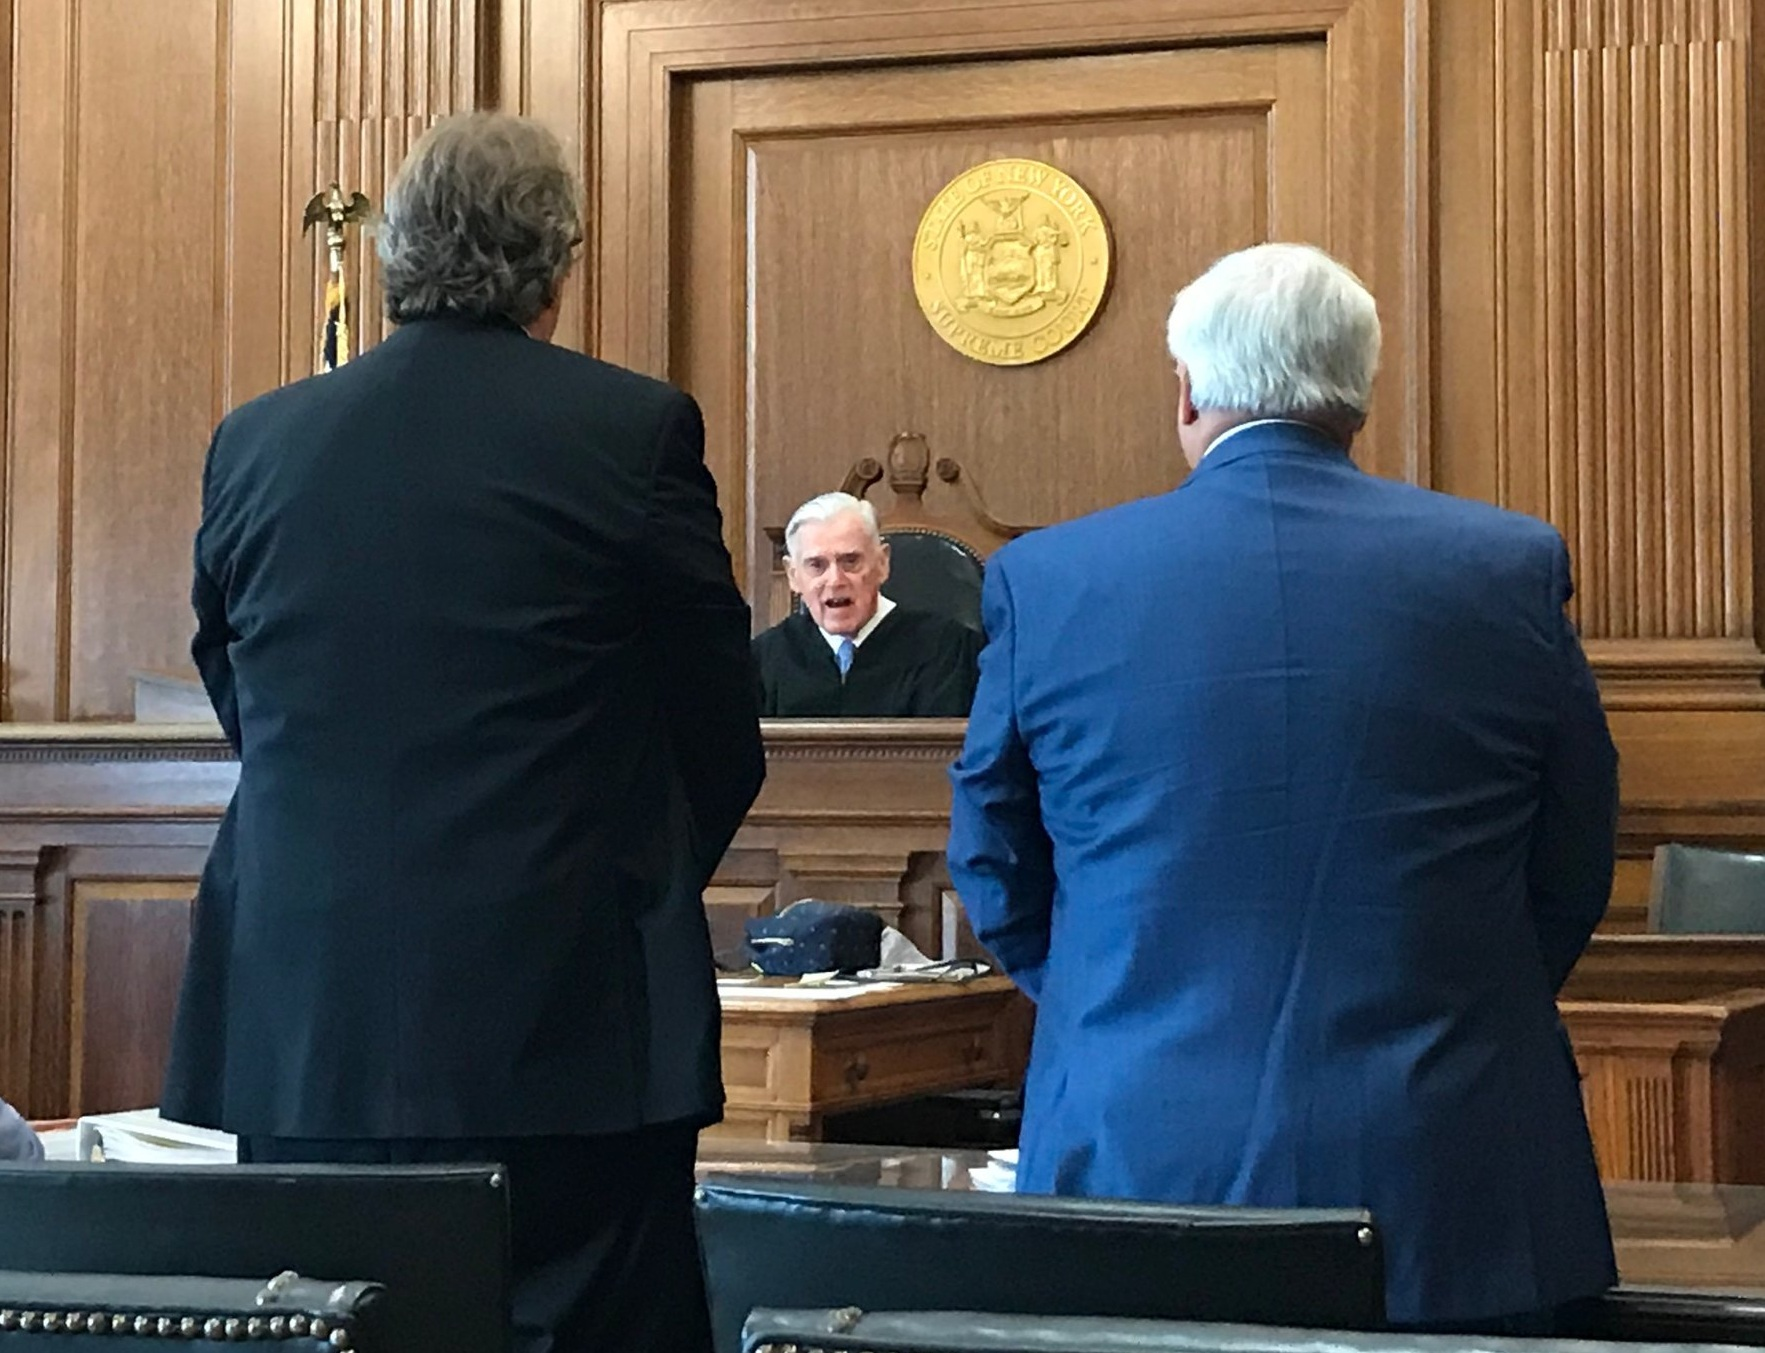 Justice John Ingram addresses Melinda Katz's campaign lawyers Frank Bolx (left) and Michael Reich (right).  Eagle  photo by David Brand